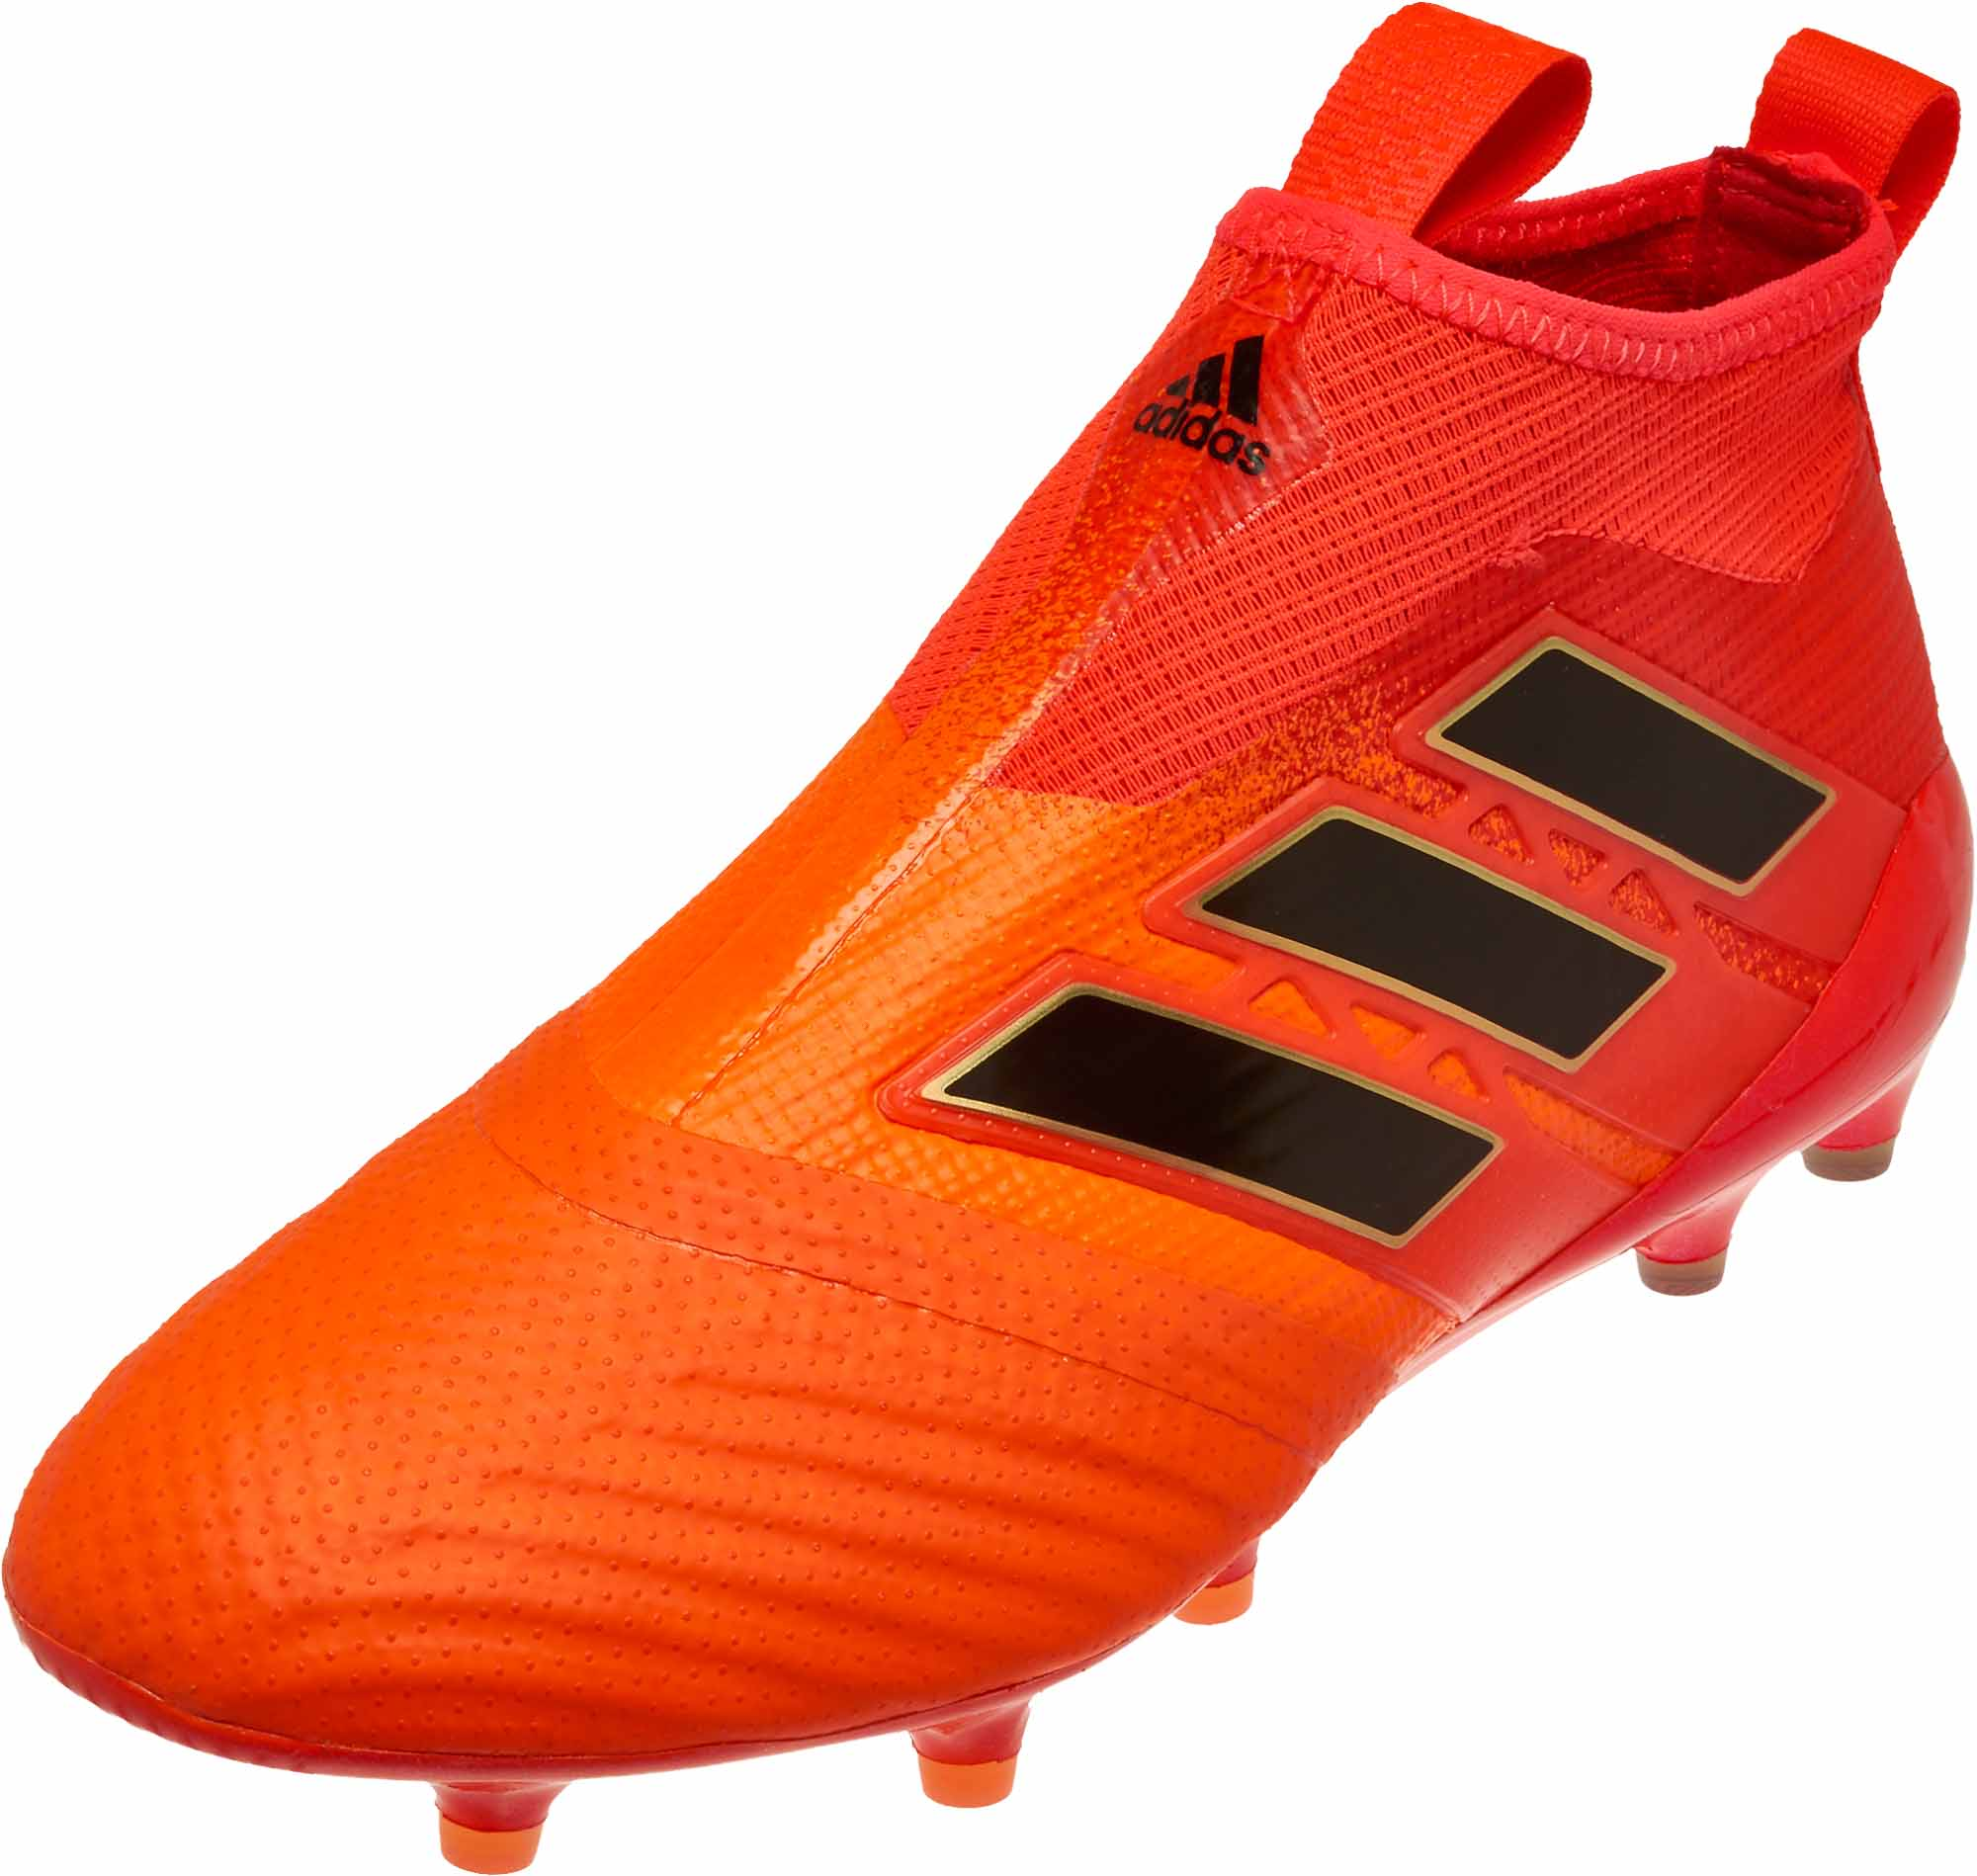 c8b24575482 adidas ACE 17+ Purecontrol FG Soccer Cleats – Solar Orange   Core Black